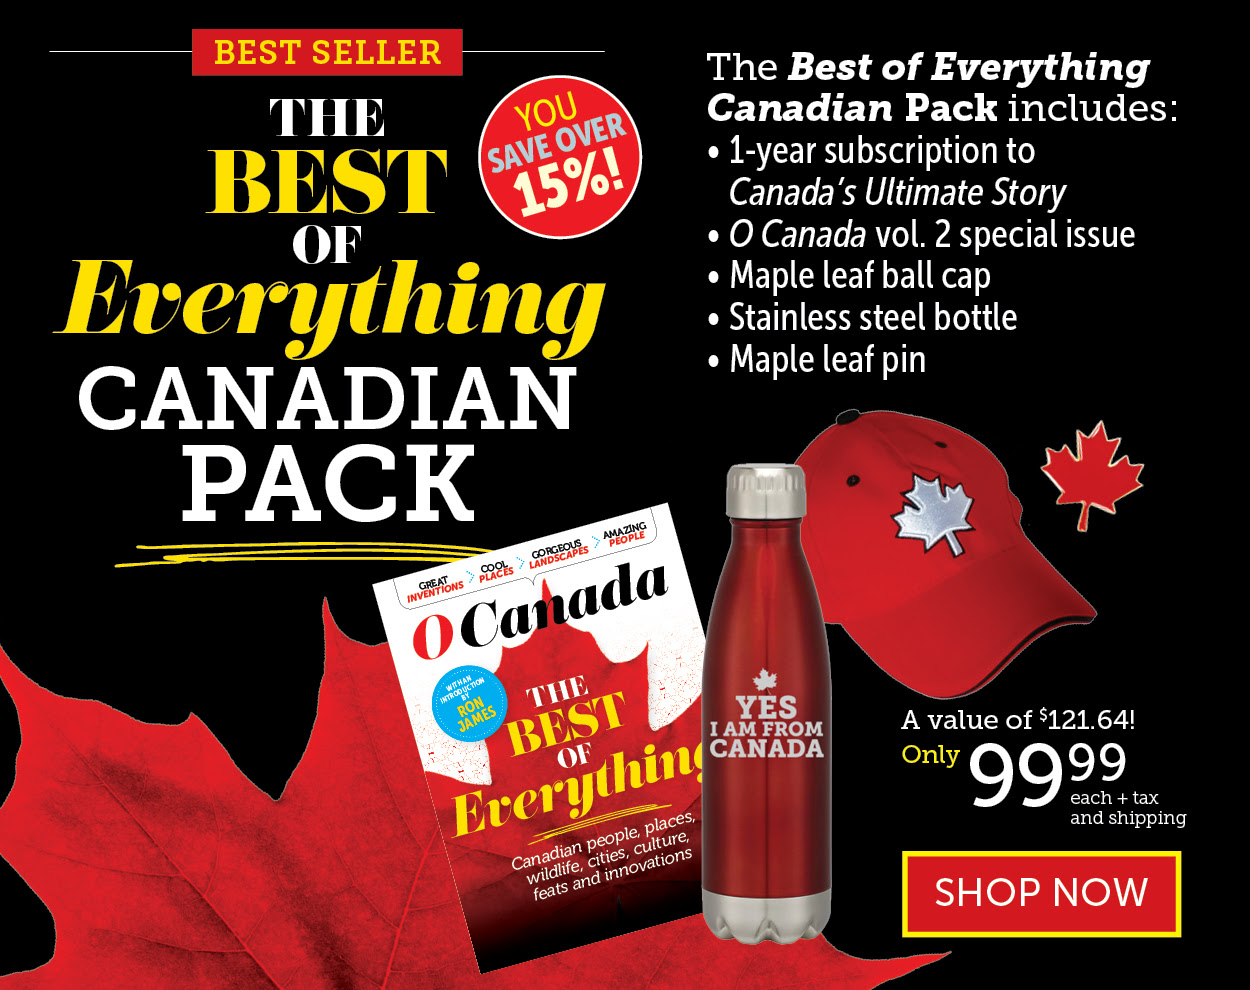 Best of Everything Canadian Pack!